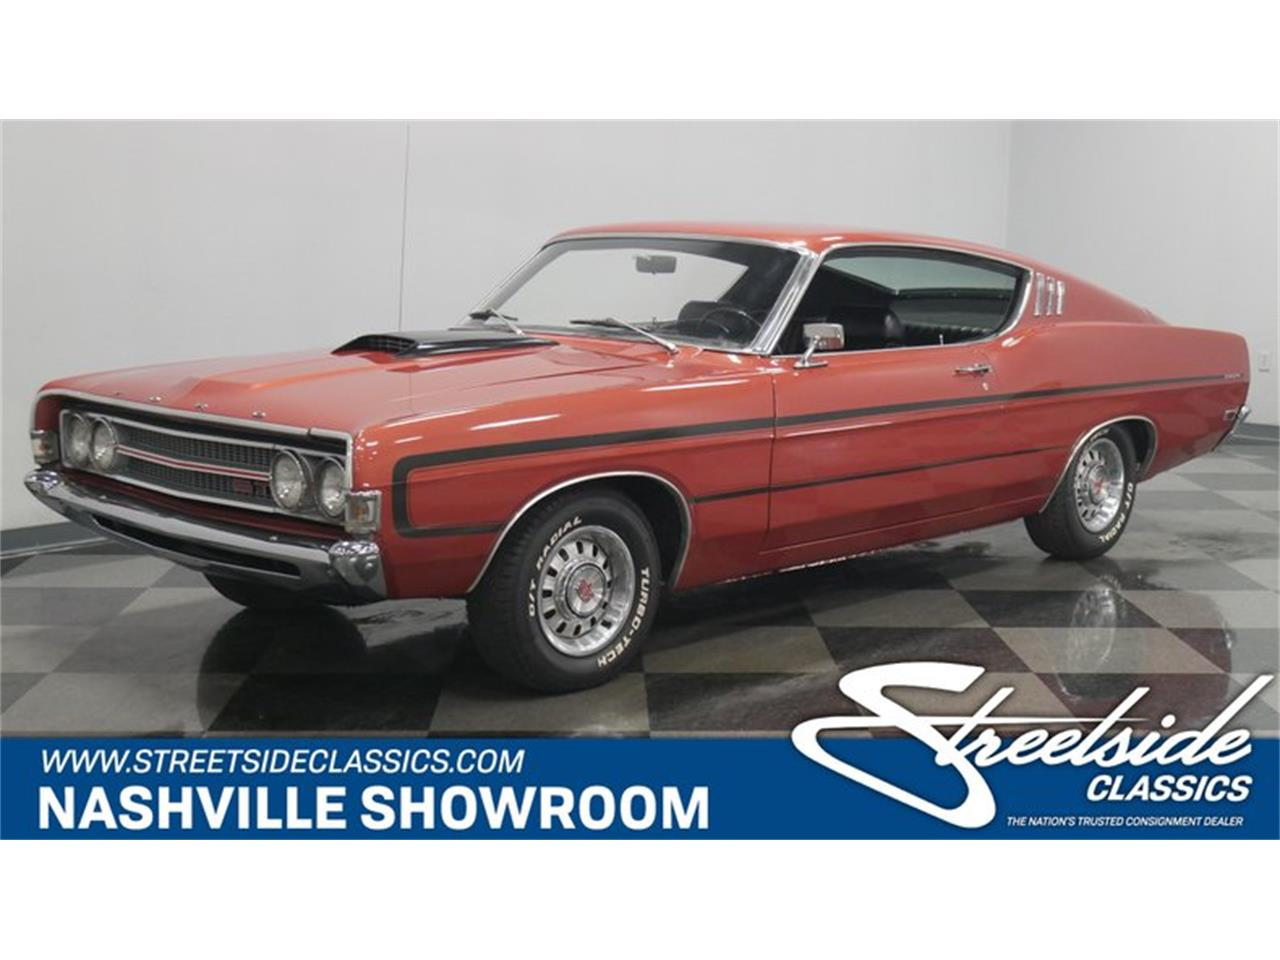 For Sale: 1969 Ford Torino in Lavergne, Tennessee